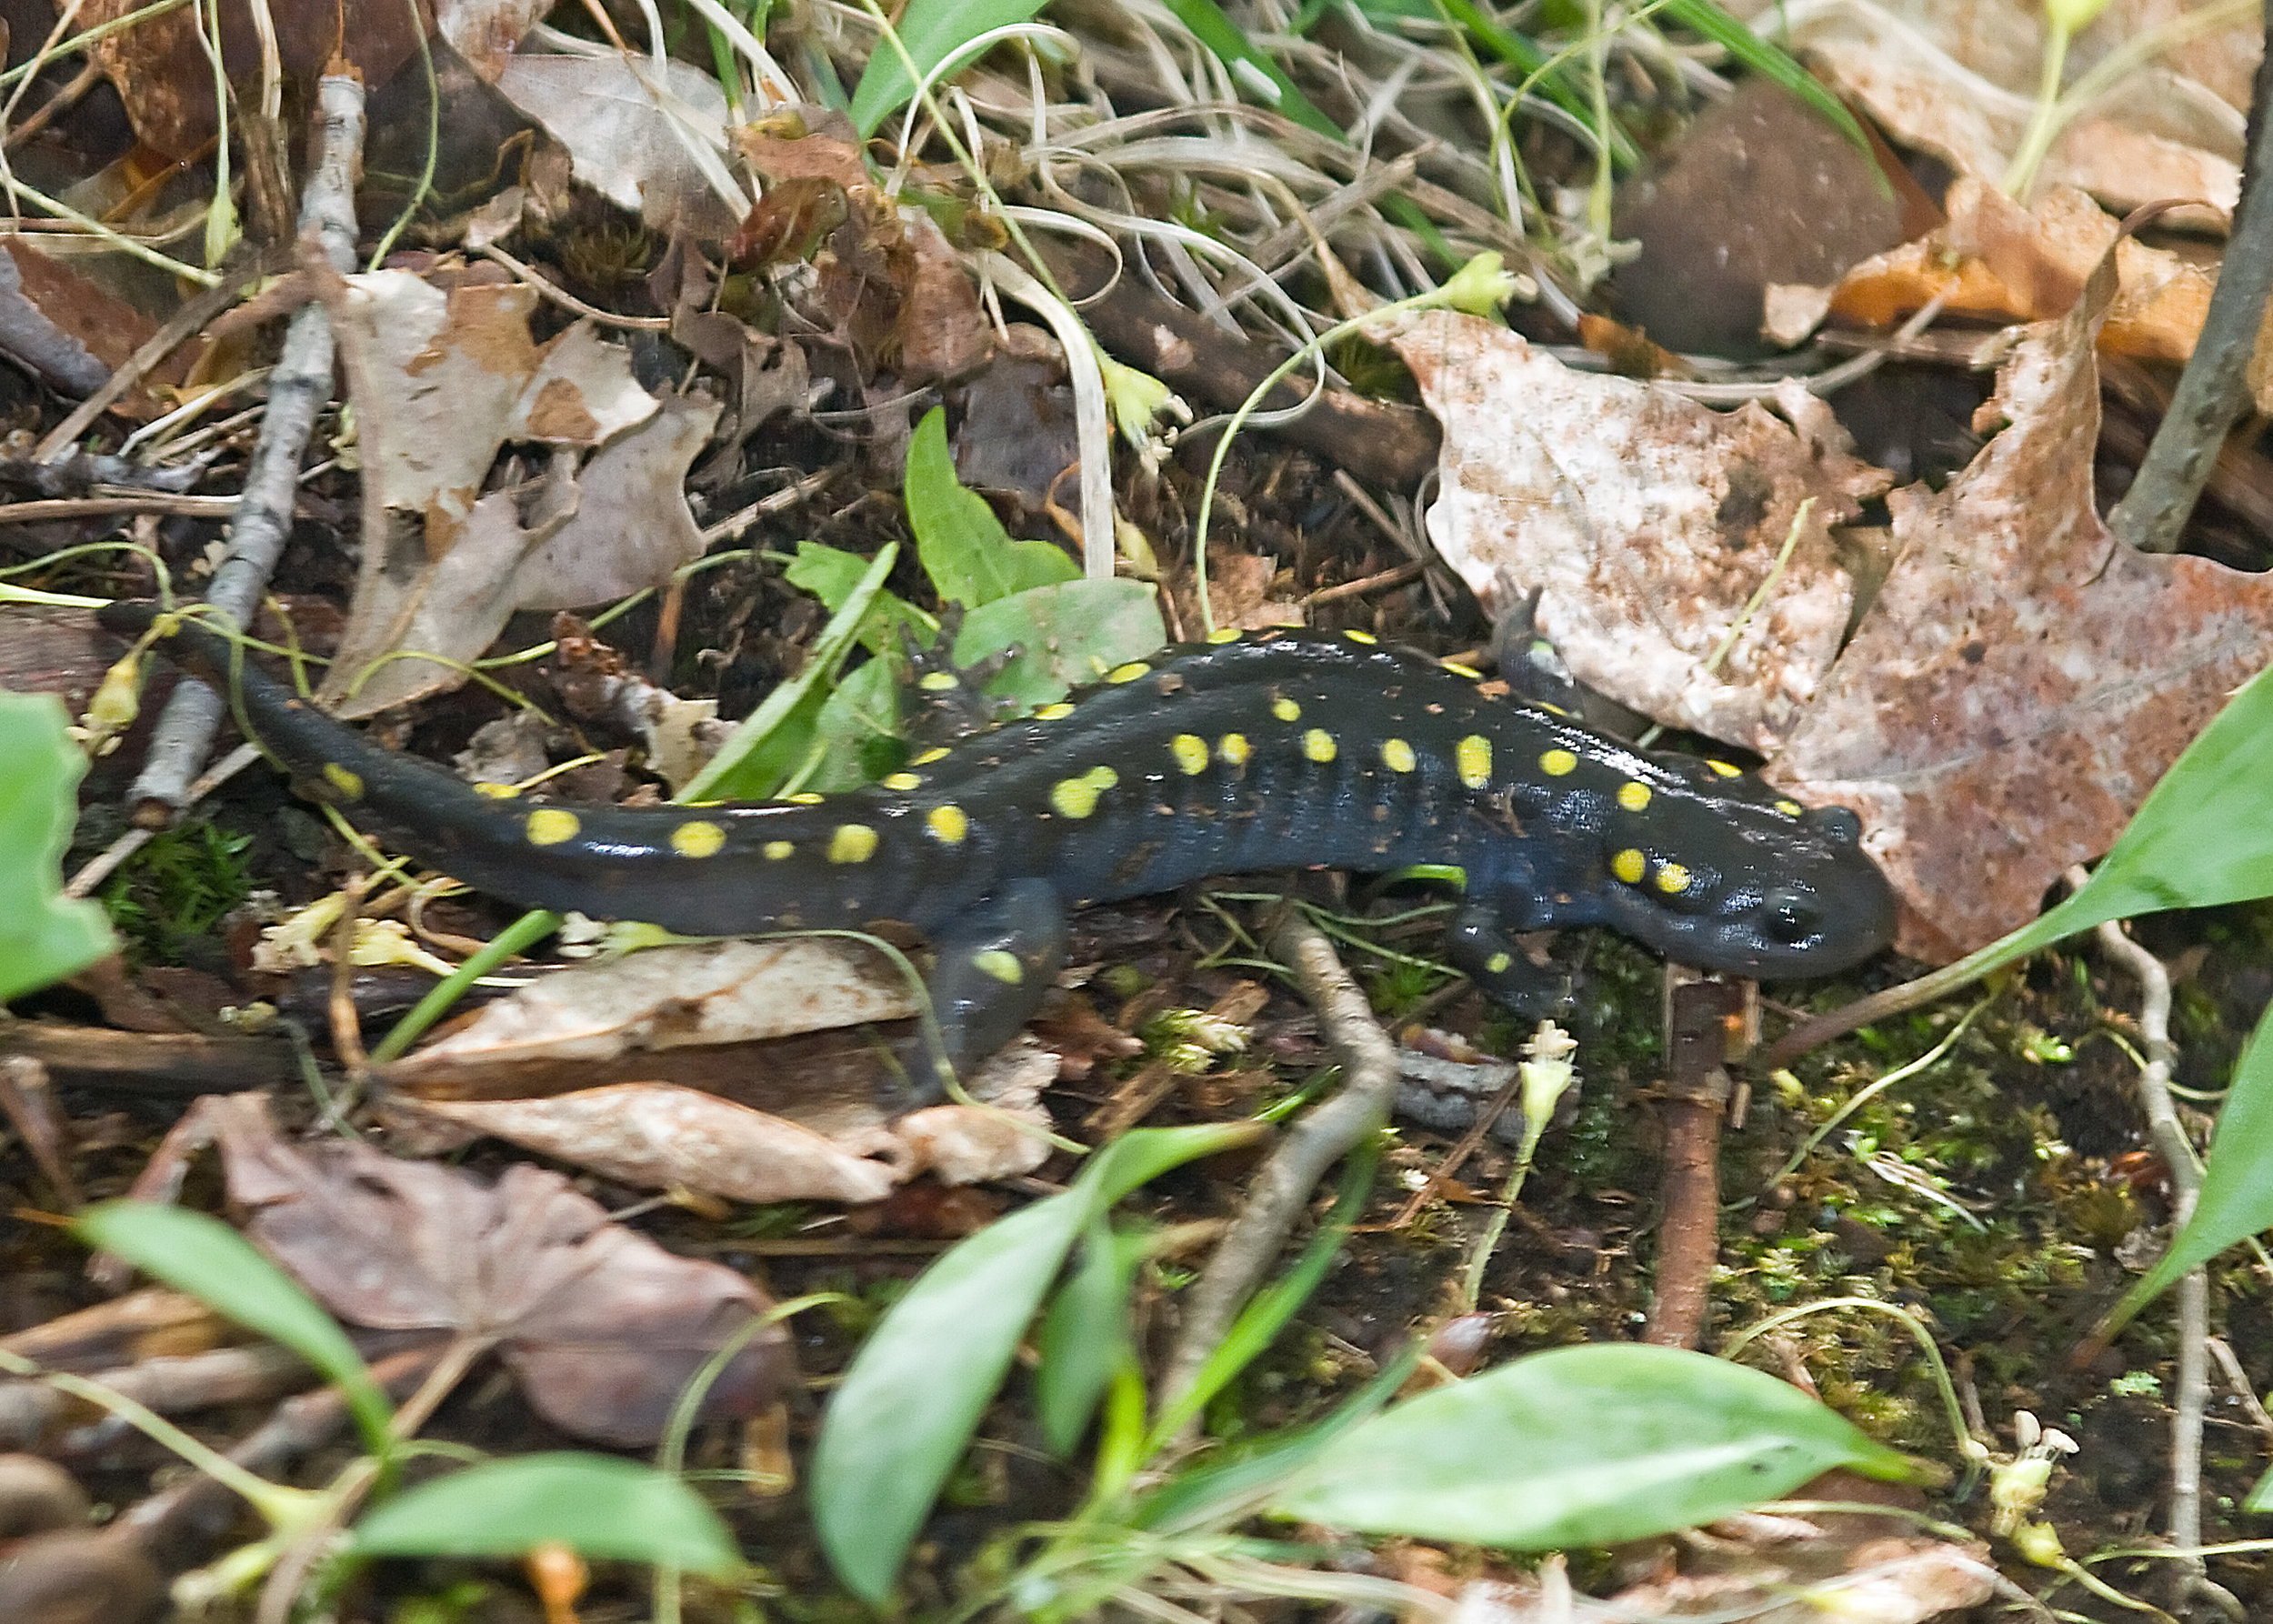 Spotted Salamander (Ambystoma maculatum) Amy's Pond 08-05-04.jpg